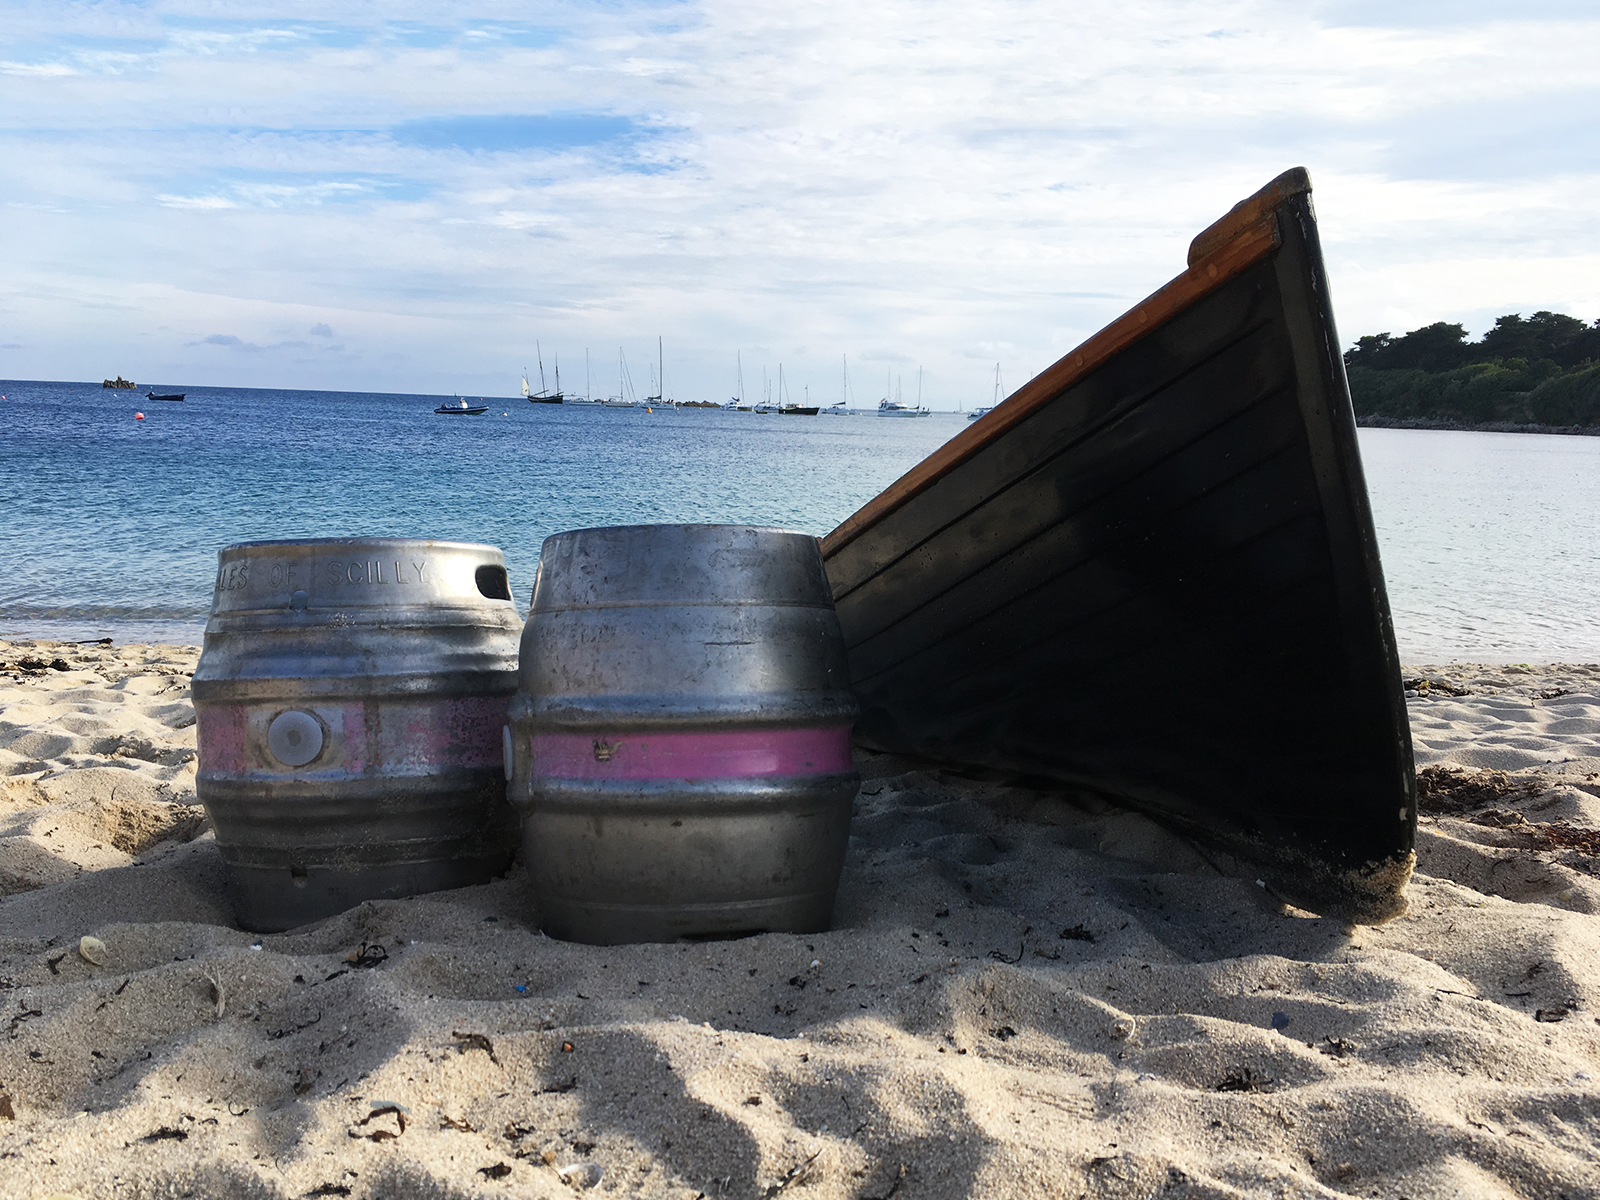 grayhound lugger sailed for ales scilly shipping beer